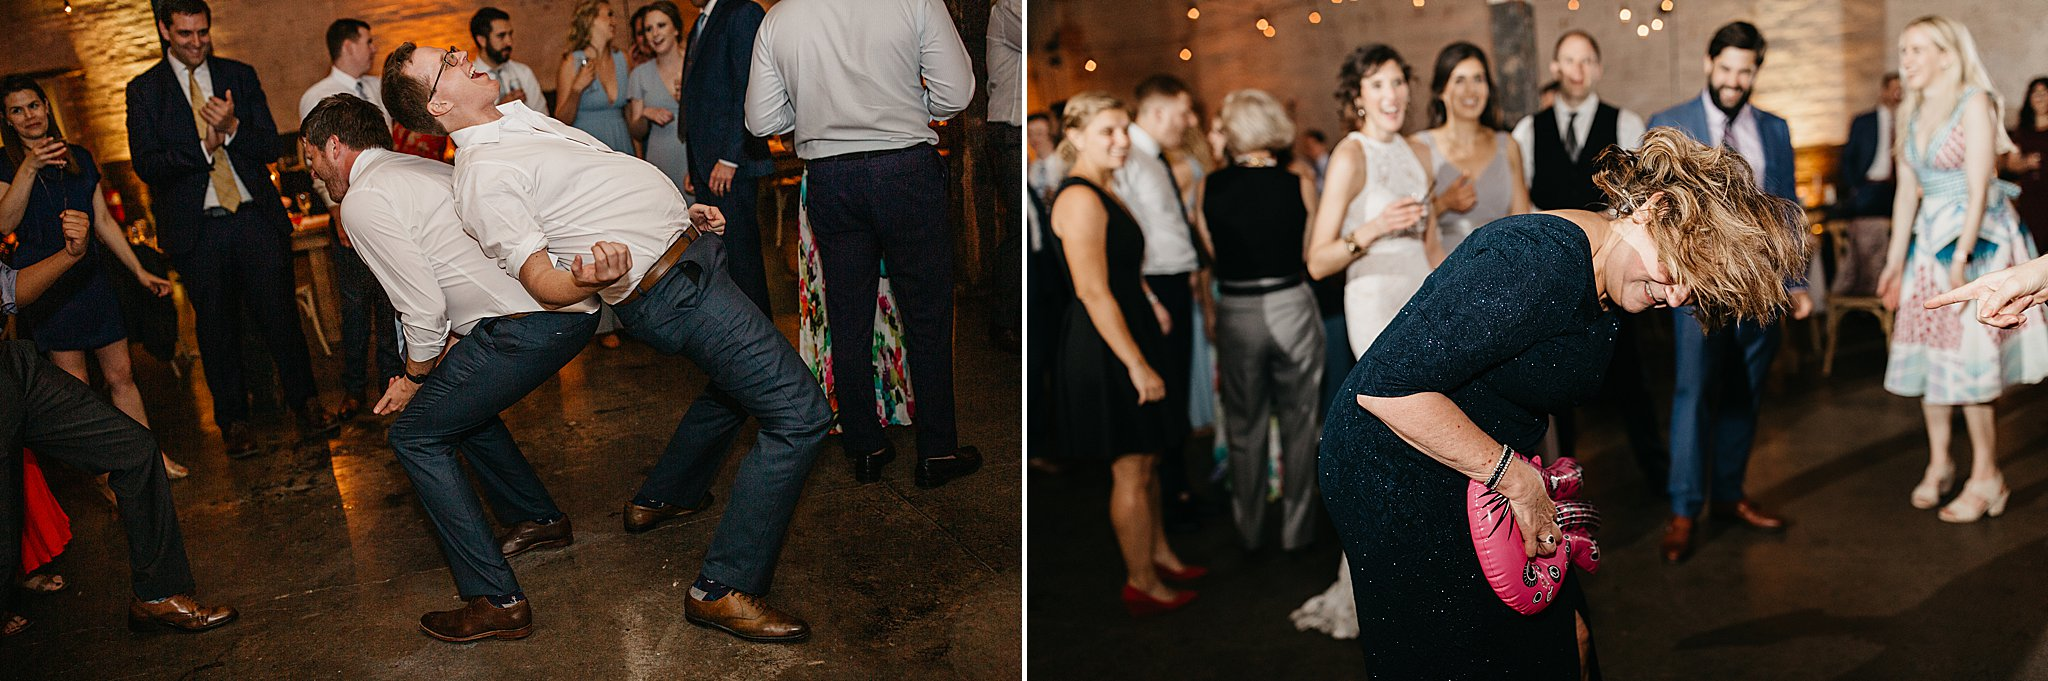 Wilderlove Co_Wedding Photographer_Industrial Wedding_Jewish Wedding_Dallas Texas Wedding_Brake & Clutch Warehouse_North Texas Photographer_0096.jpg